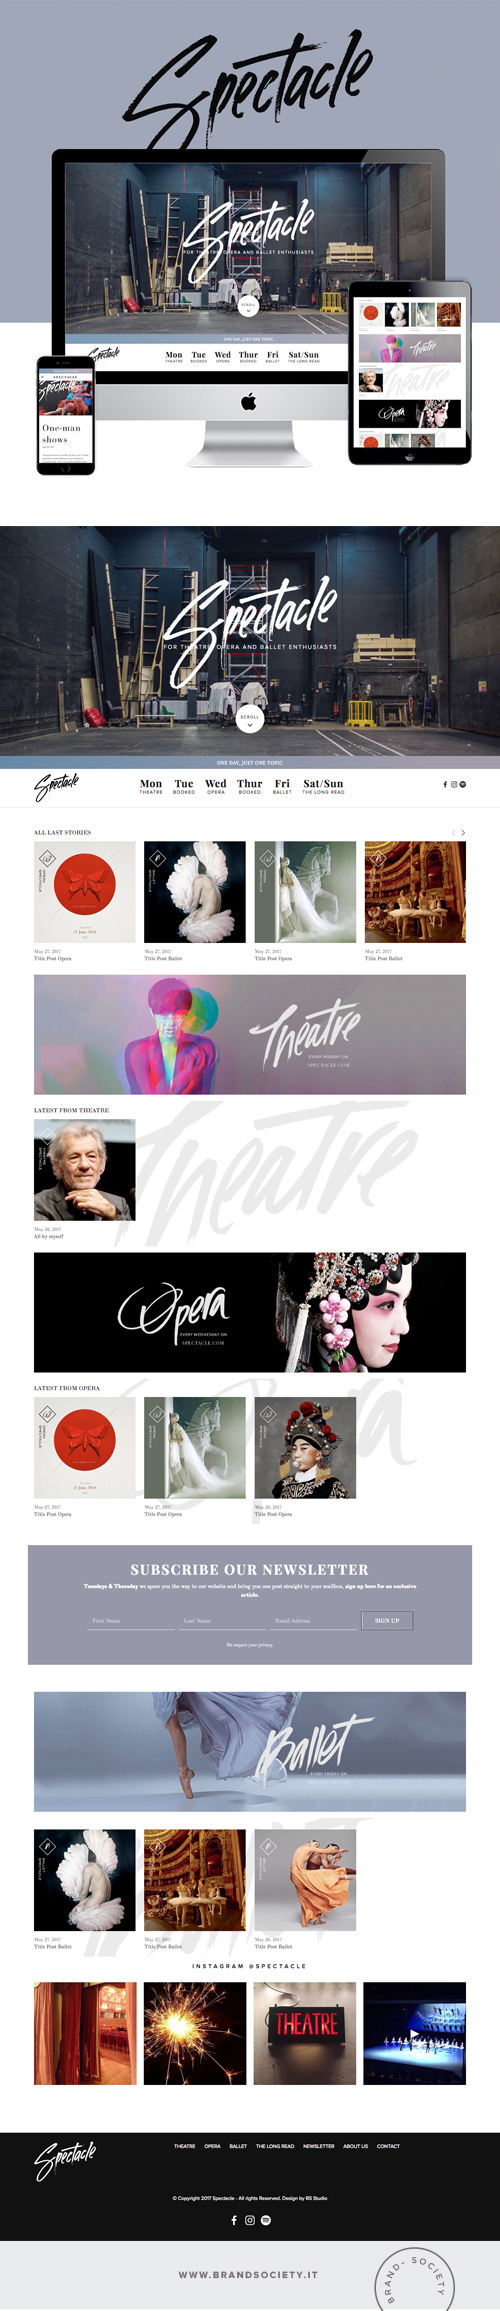 SPECTACLE MAGAZINE    SERVICES  || SQUARESPACE WEBSITE | MAGAZINE DESIGN | COLOR PALETTE